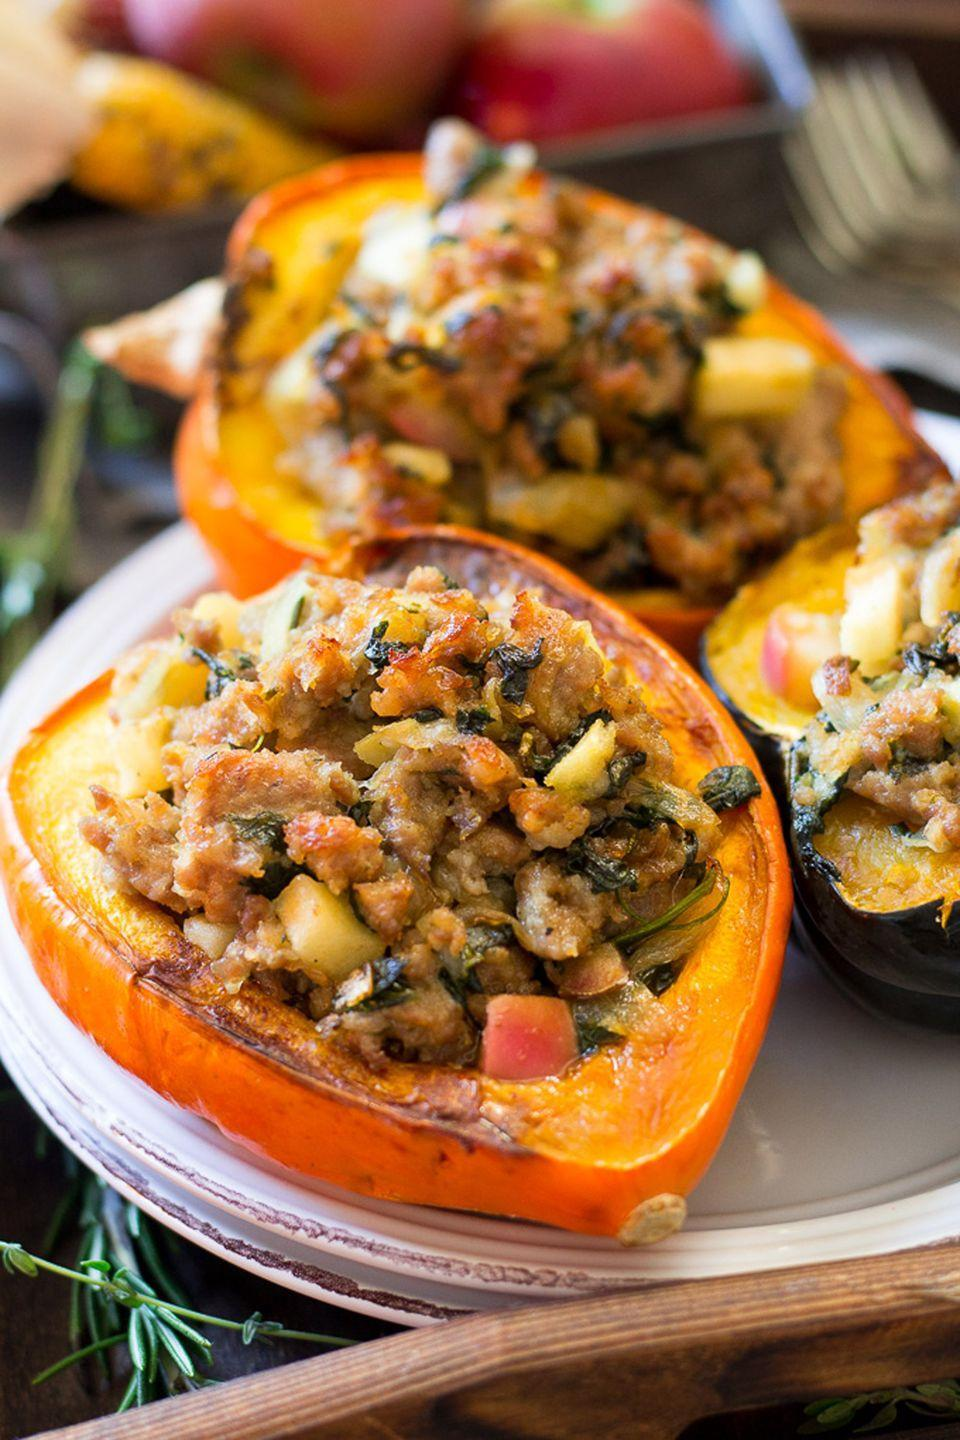 "<p>You can enjoy all the flavors of fall and reach your healthy eating goals. </p><p><strong>Get the recipe at <a href=""https://www.paleorunningmomma.com/sausage-stuffed-acorn-squash-paleo-whole30/"" rel=""nofollow noopener"" target=""_blank"" data-ylk=""slk:Paleo Running Mama"" class=""link rapid-noclick-resp"">Paleo Running Mama</a>.</strong></p><p><a class=""link rapid-noclick-resp"" href=""https://www.amazon.com/Victorinox-Paring-Knife-Straight-Spear/dp/B0019WXPQY?tag=syn-yahoo-20&ascsubtag=%5Bartid%7C10050.g.650%5Bsrc%7Cyahoo-us"" rel=""nofollow noopener"" target=""_blank"" data-ylk=""slk:SHOP PARING KNIVES"">SHOP PARING KNIVES</a><br></p>"